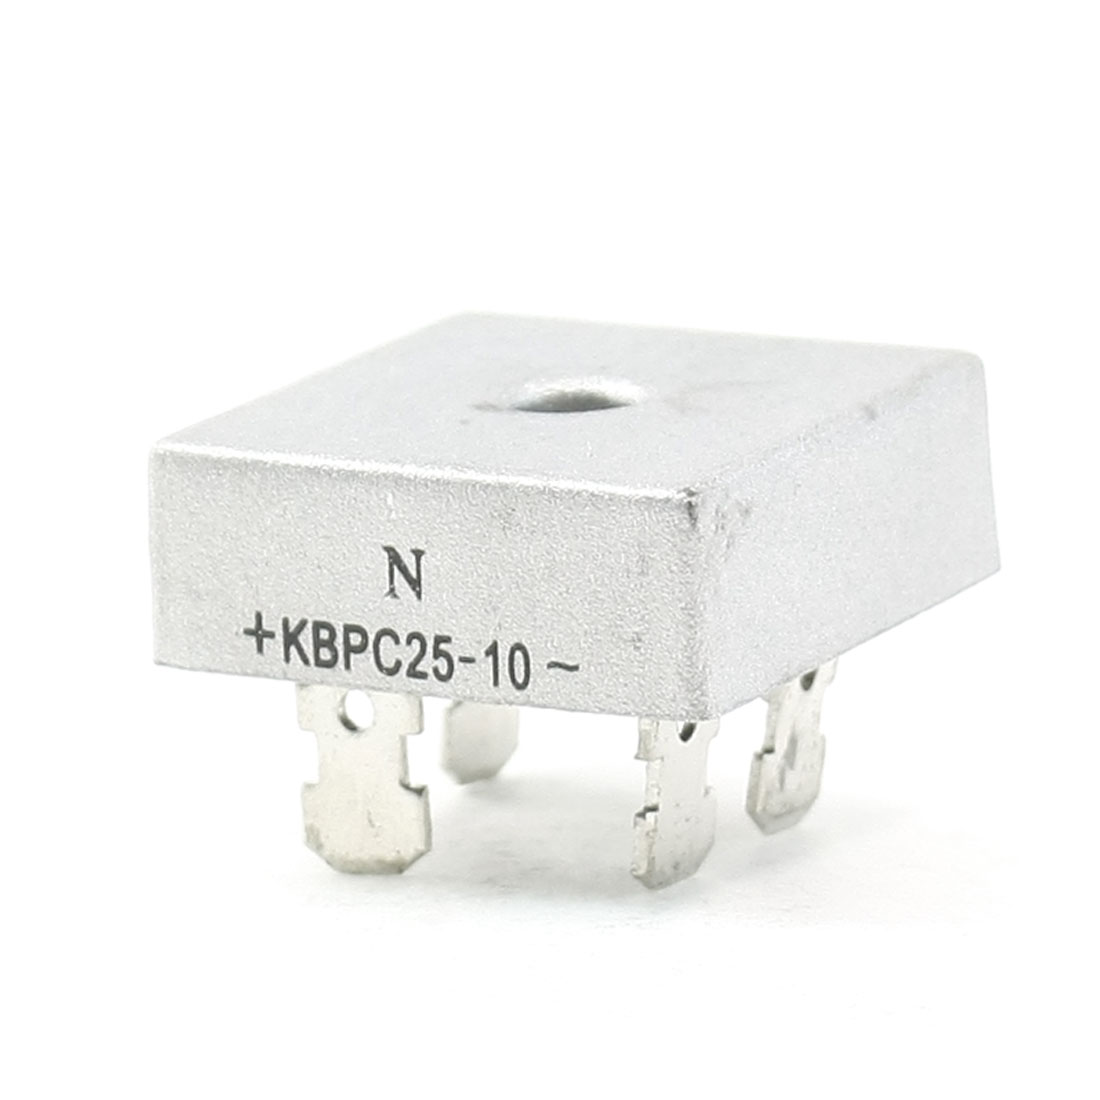 KBPC25-10 1KV 25A Single Phase Bridge Rectifier Half-Wave Silver Tone